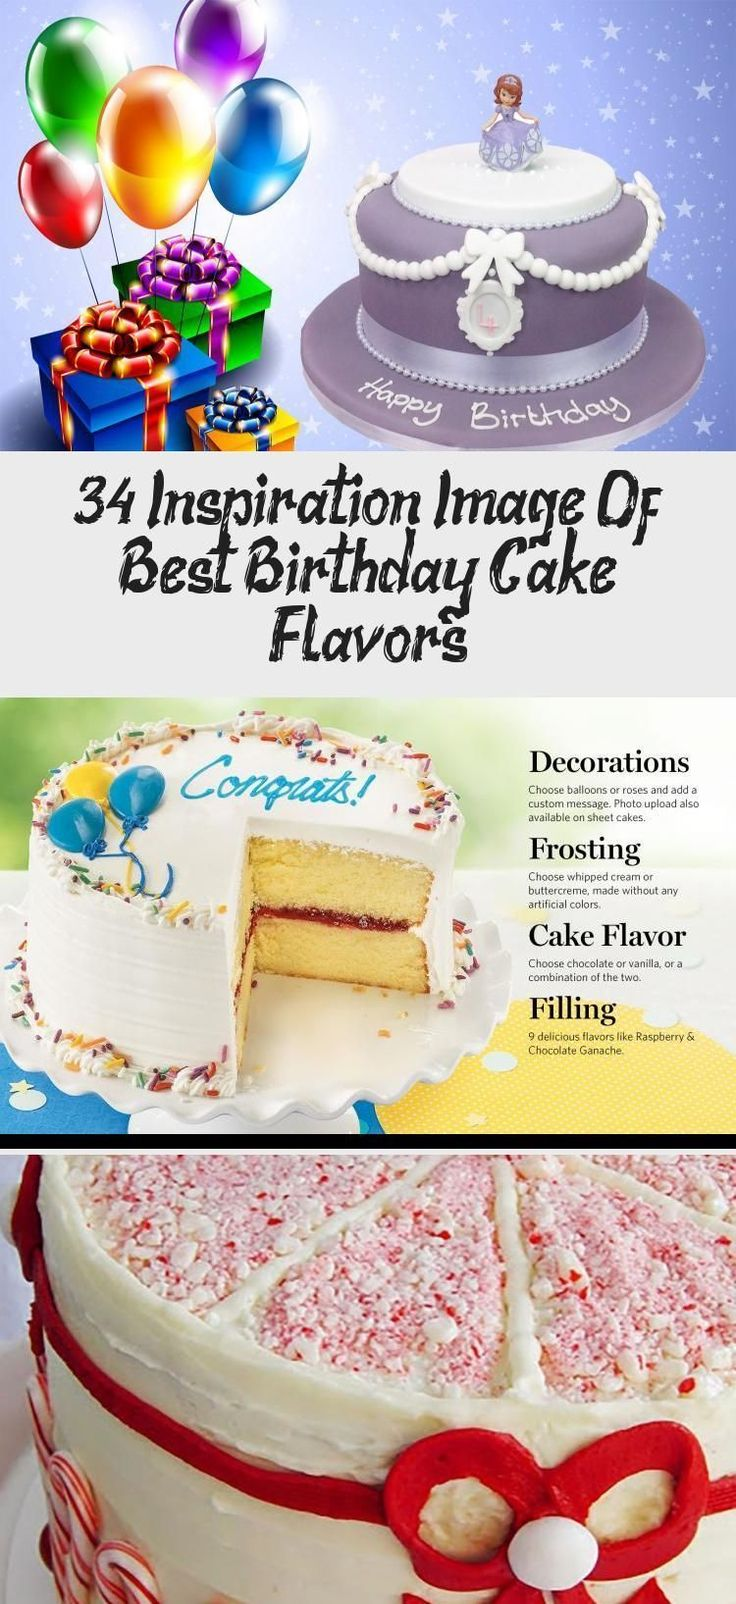 34 inspiration image of best birthday cake flavors